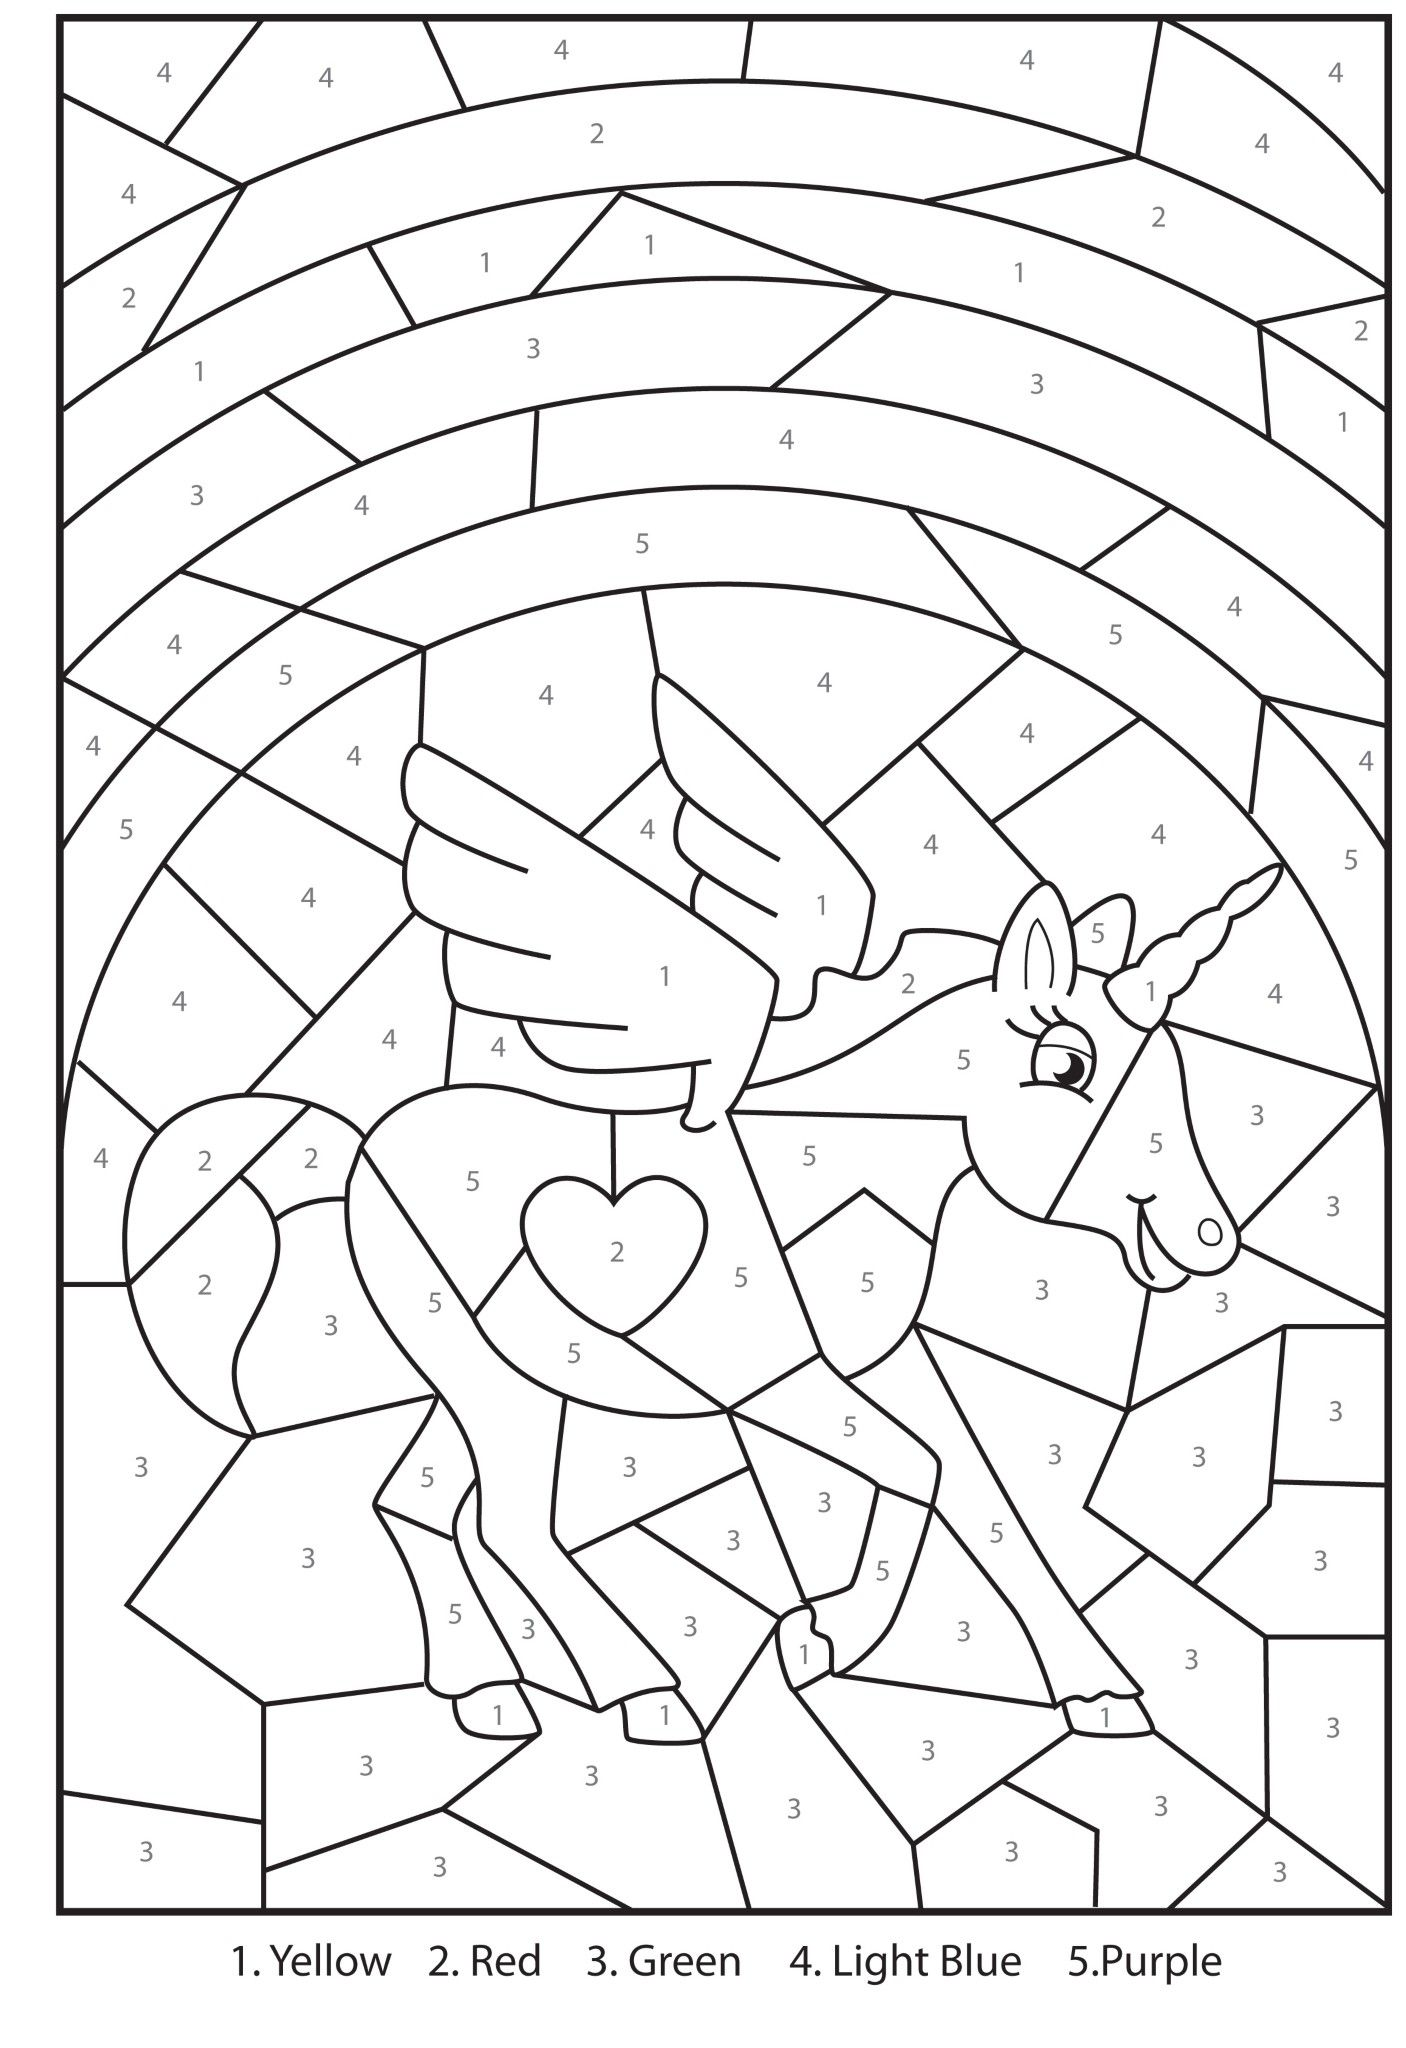 Pin By Janiya Lewis On Daycare Unicorn Coloring Pages Printables Free Kids Coloring Free Kids Coloring Pages